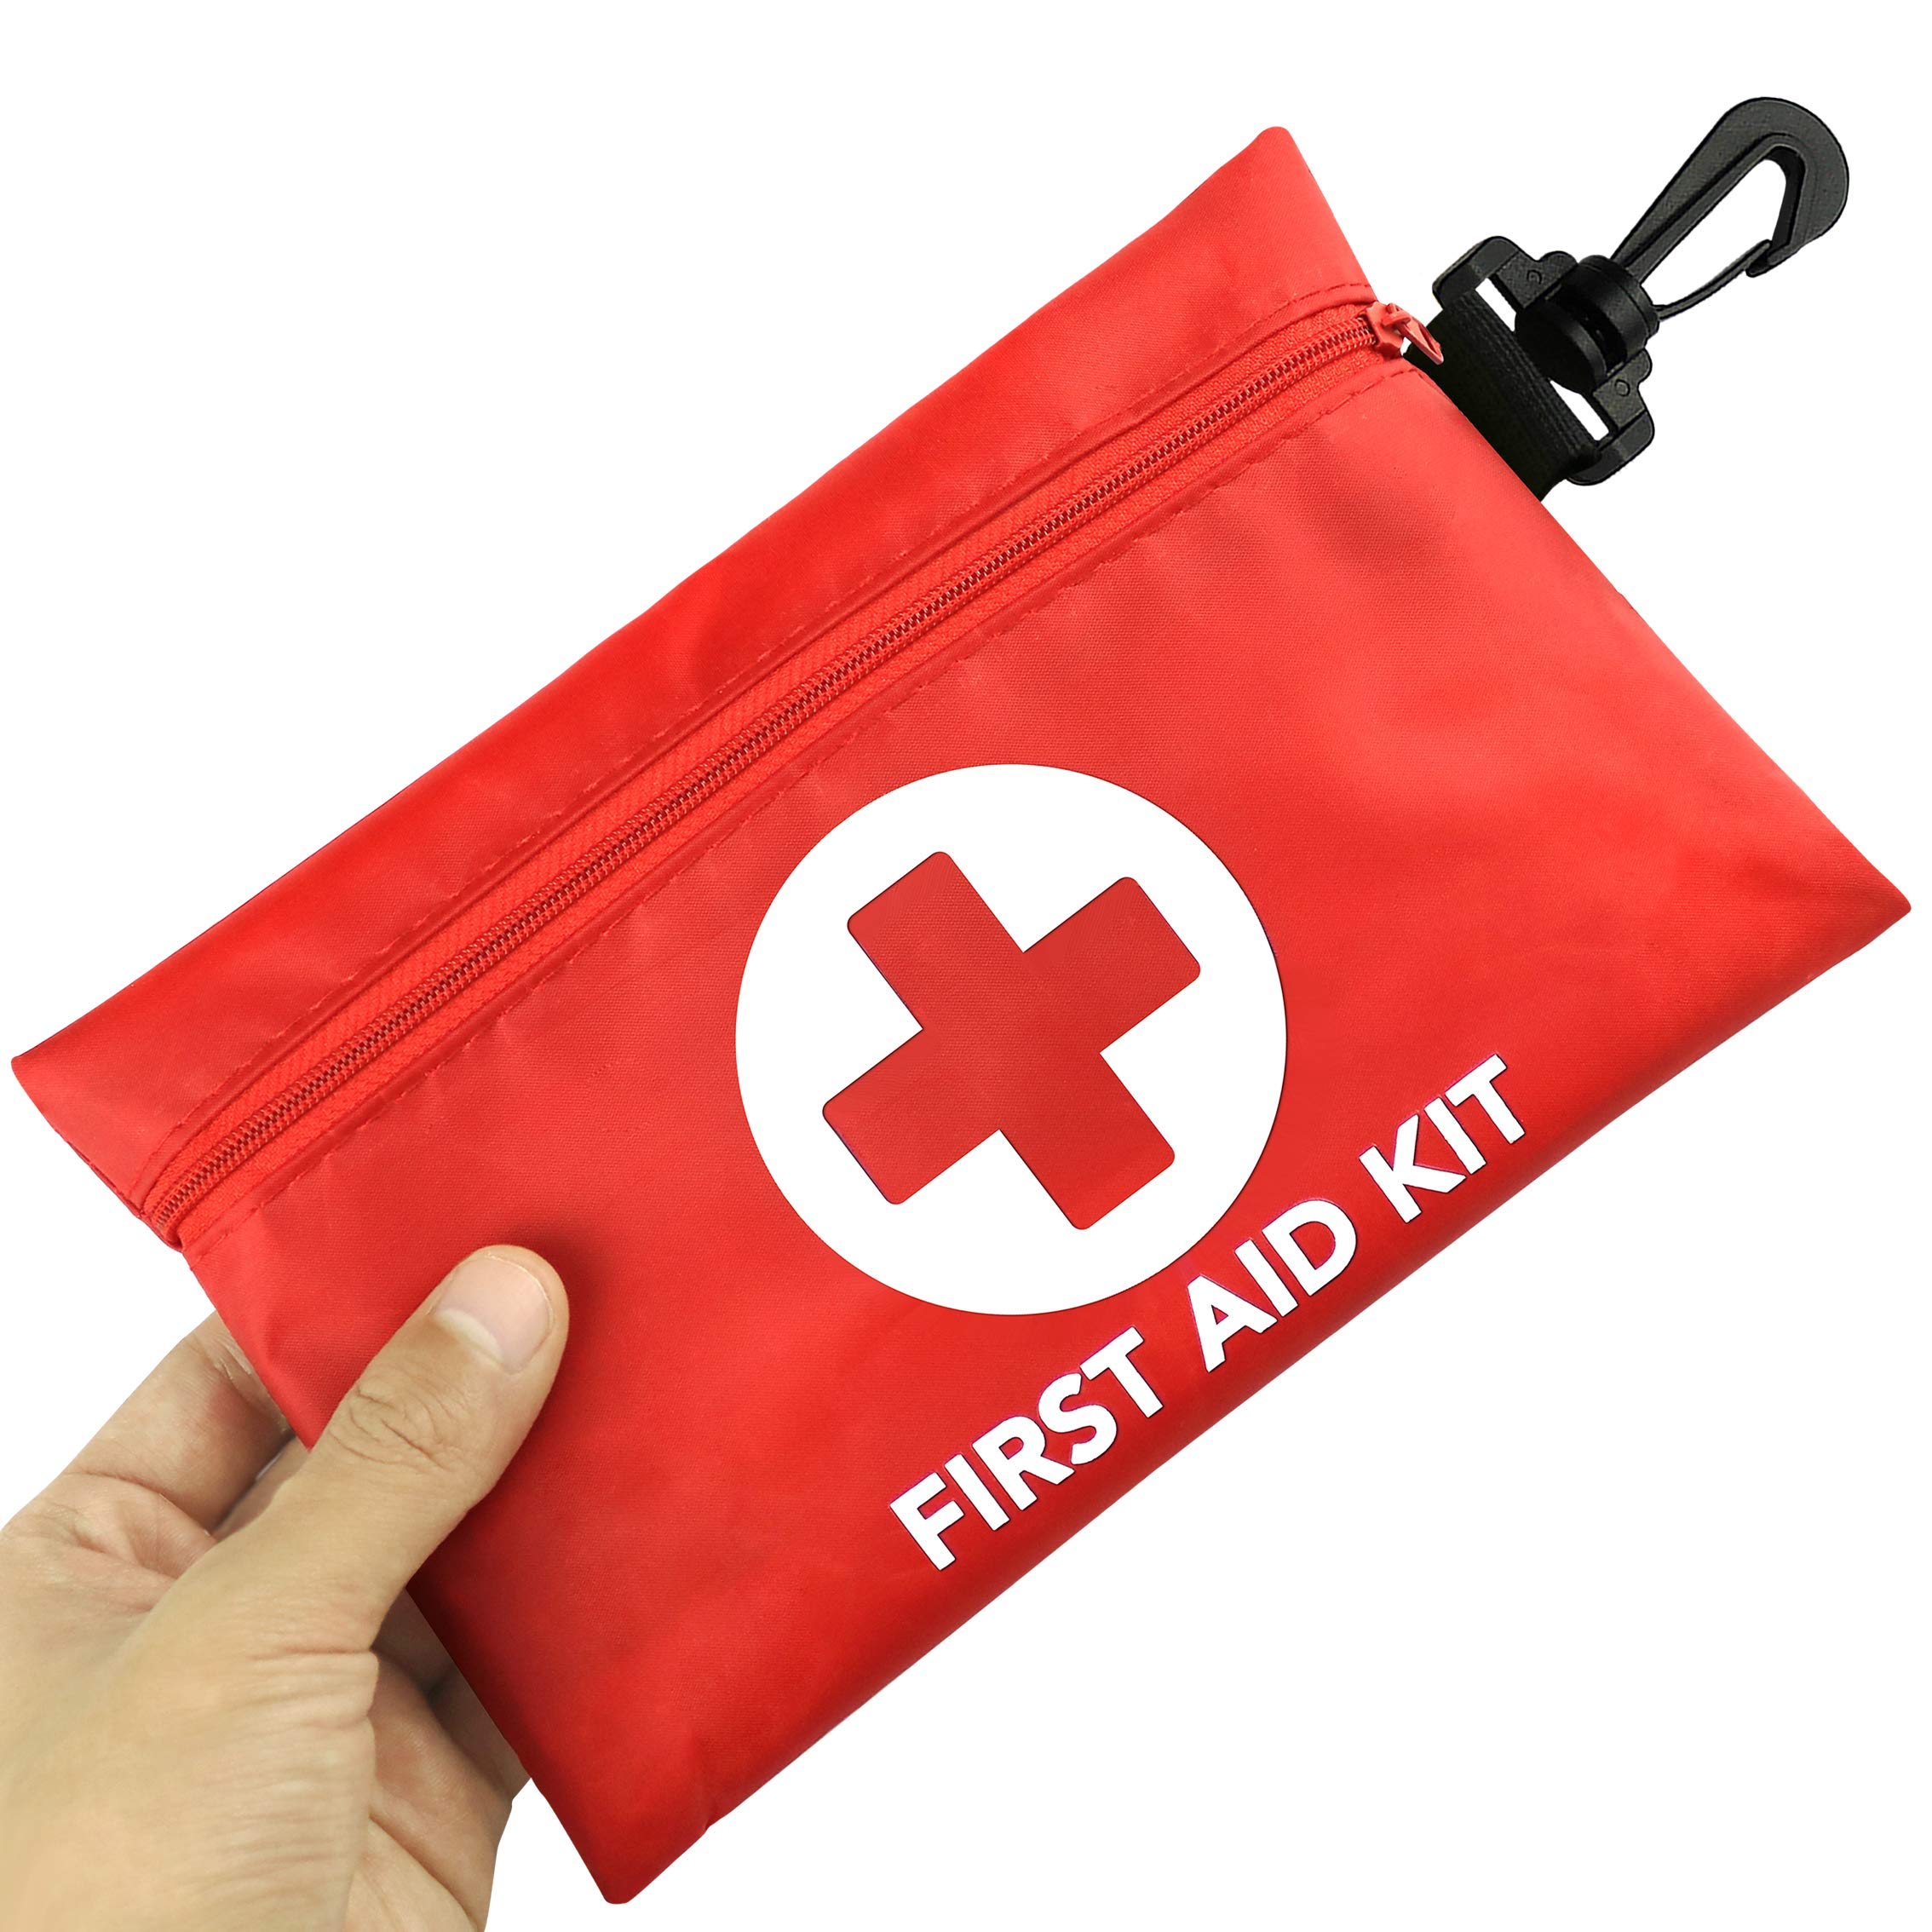 Small First Aid Kit, 100 Pieces Compact Waterproof Mini Emergency Survival Kit FDA OSHA Compliant for Home, Workplace, Vehicle, Travel, Camping, Backpacking Outdoor (Red) by RISEN